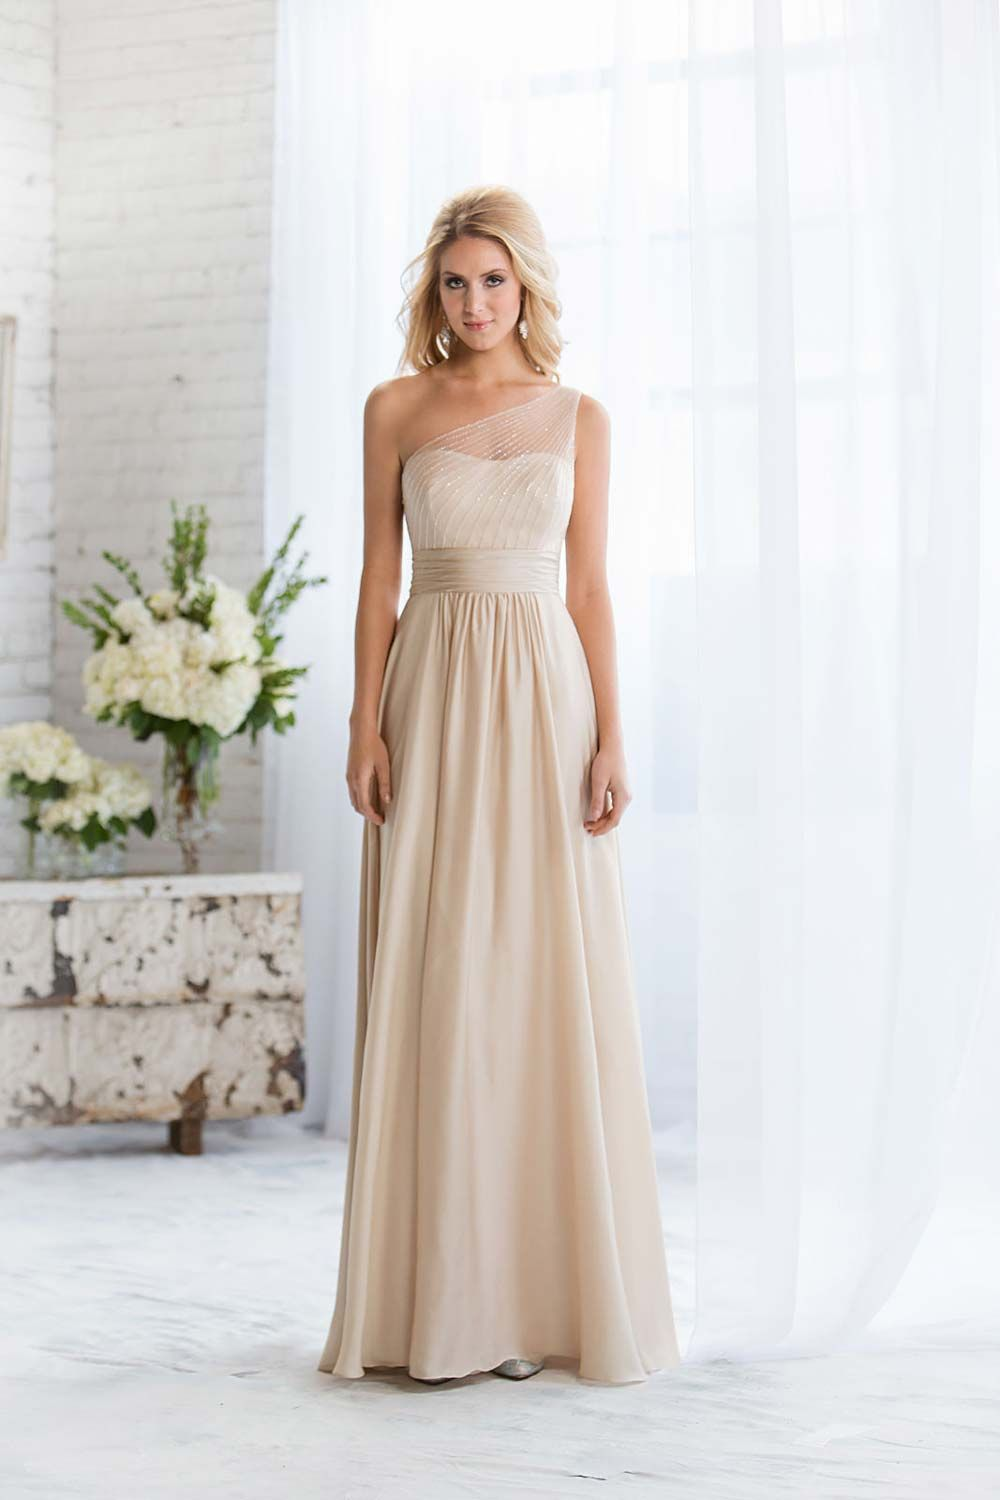 15 Champagne Bridesmaid Dresses That Your